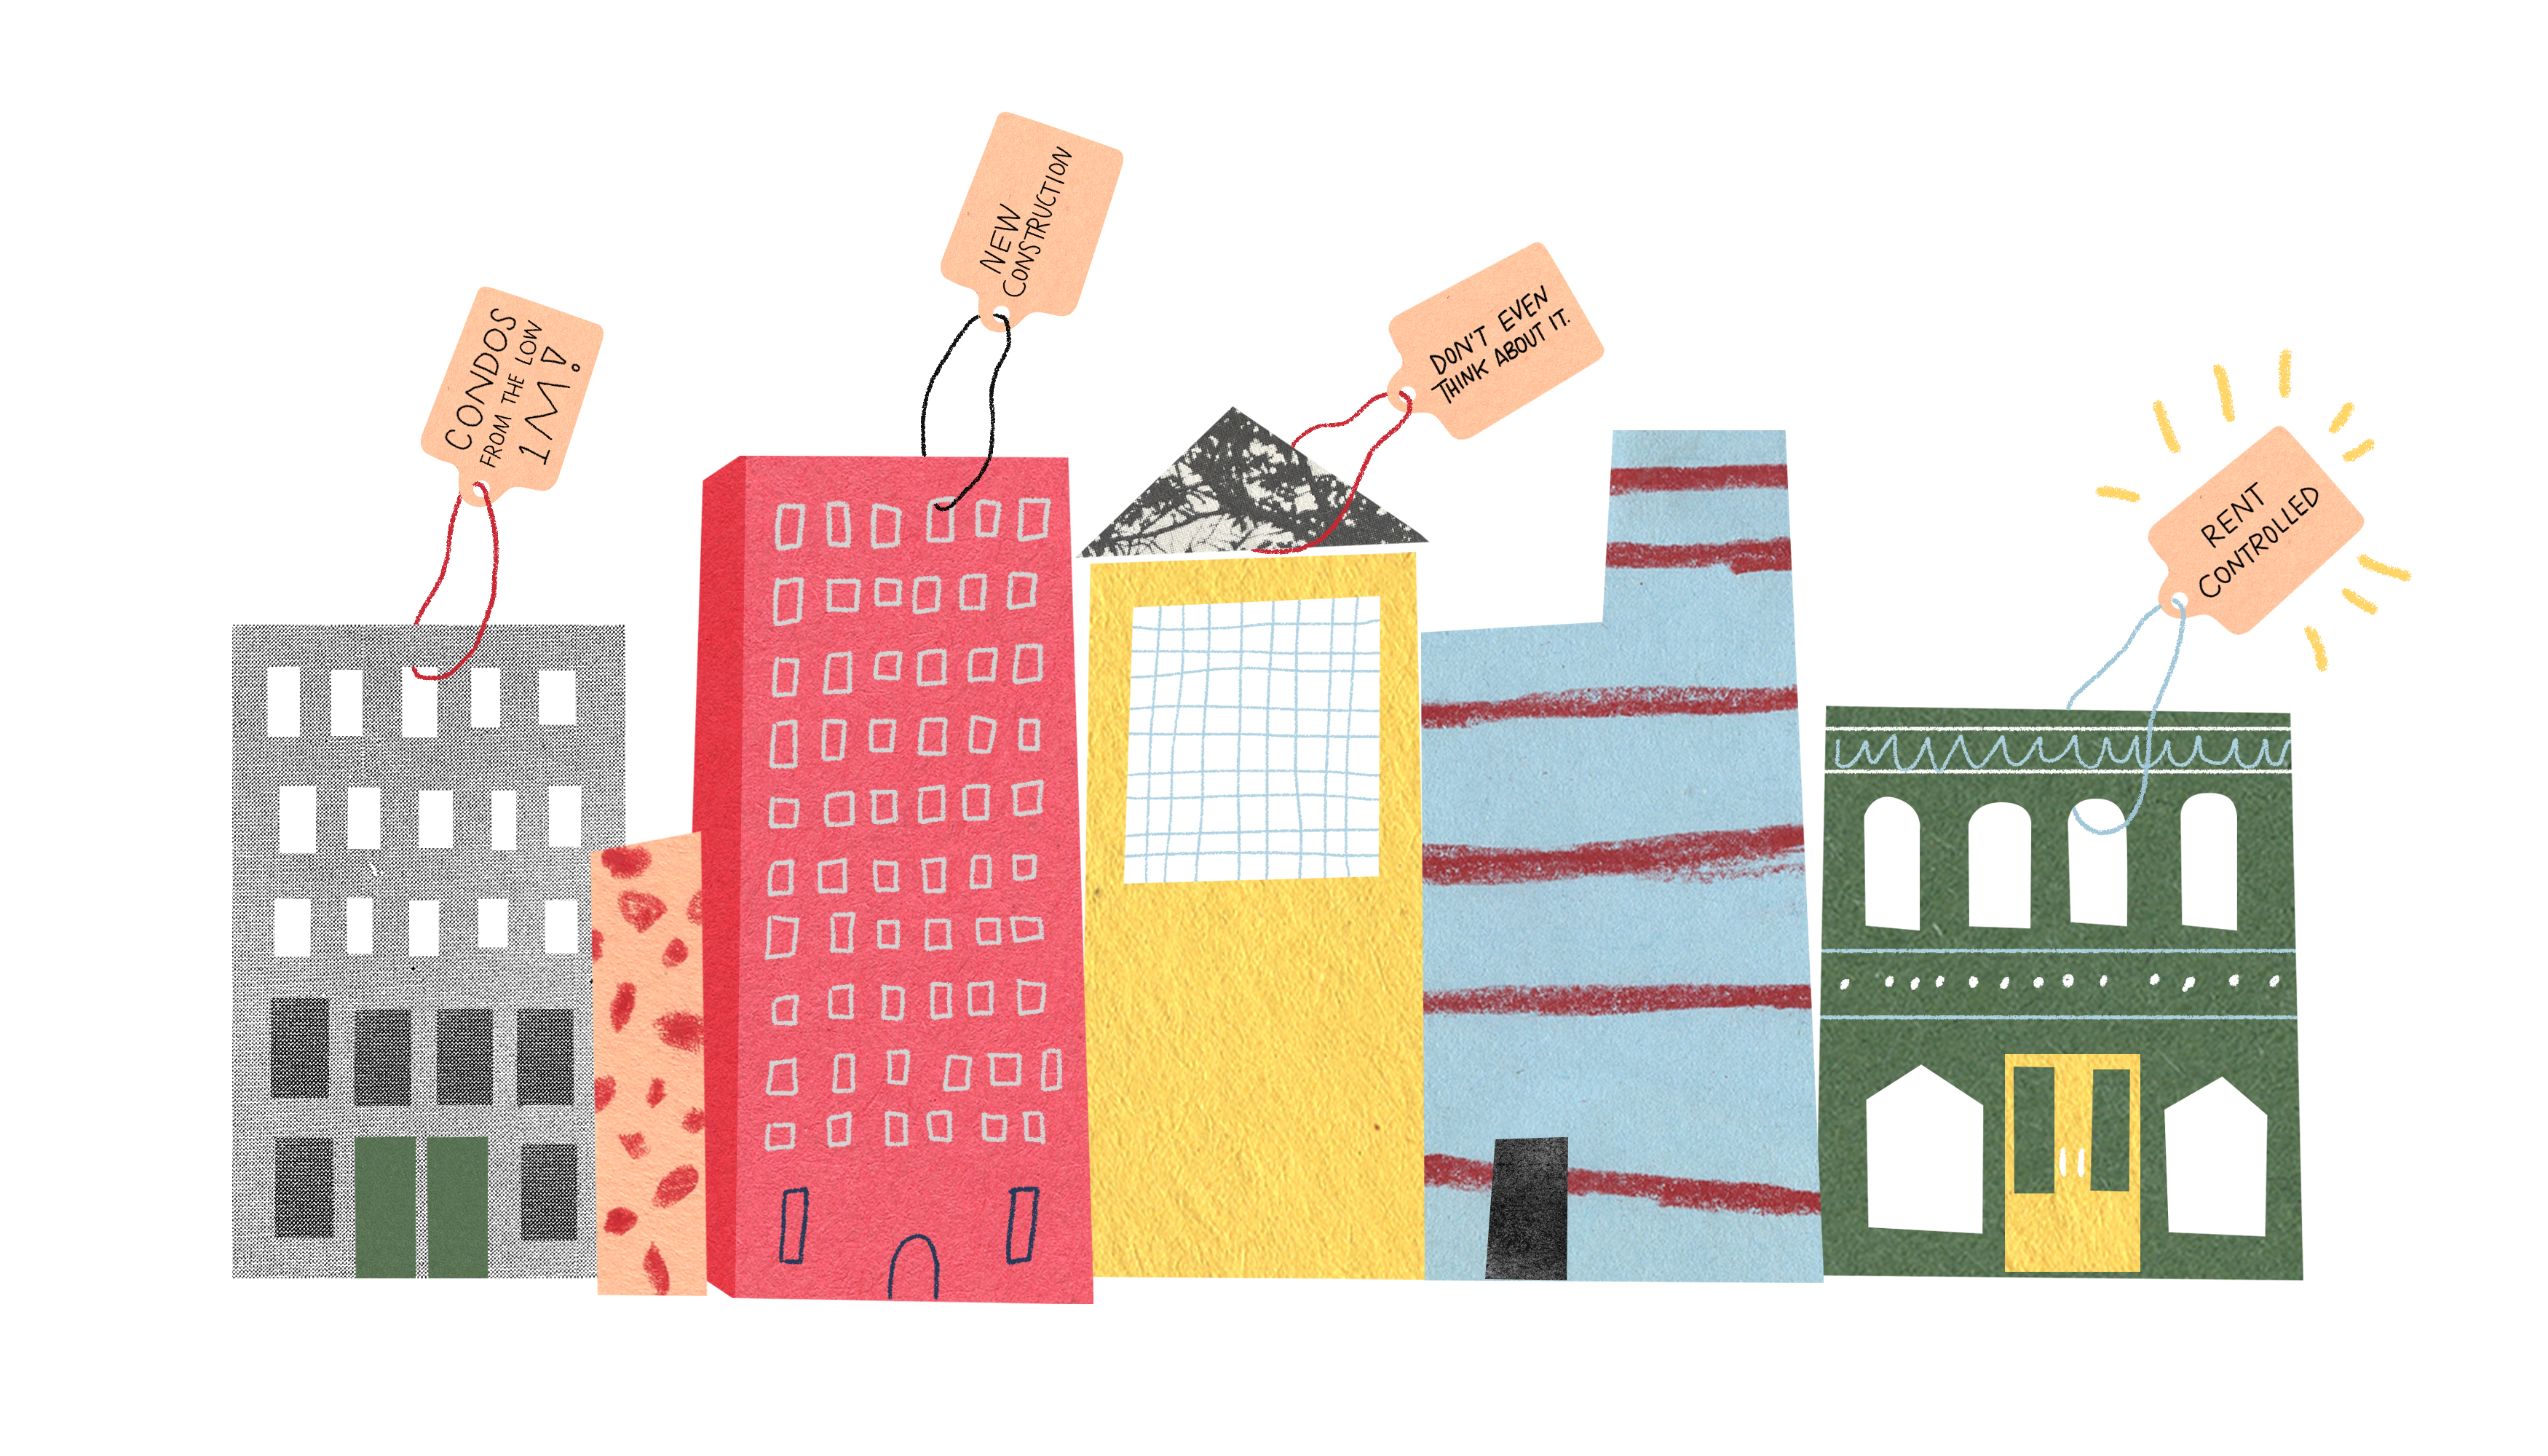 A series of city high rise buildings with giant price tags on them. Illustration.